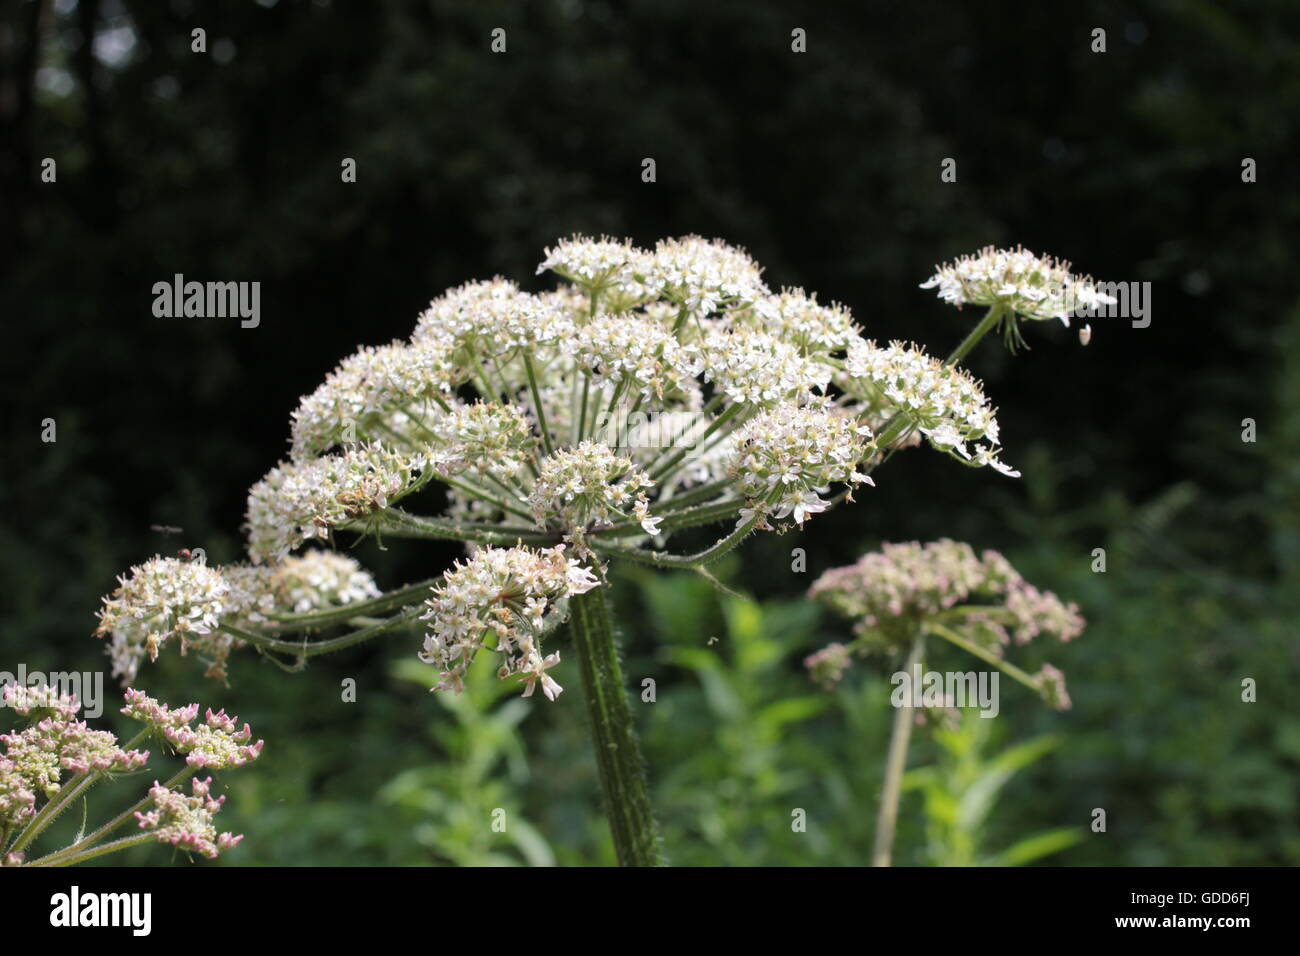 Giant hogweed - Stock Image